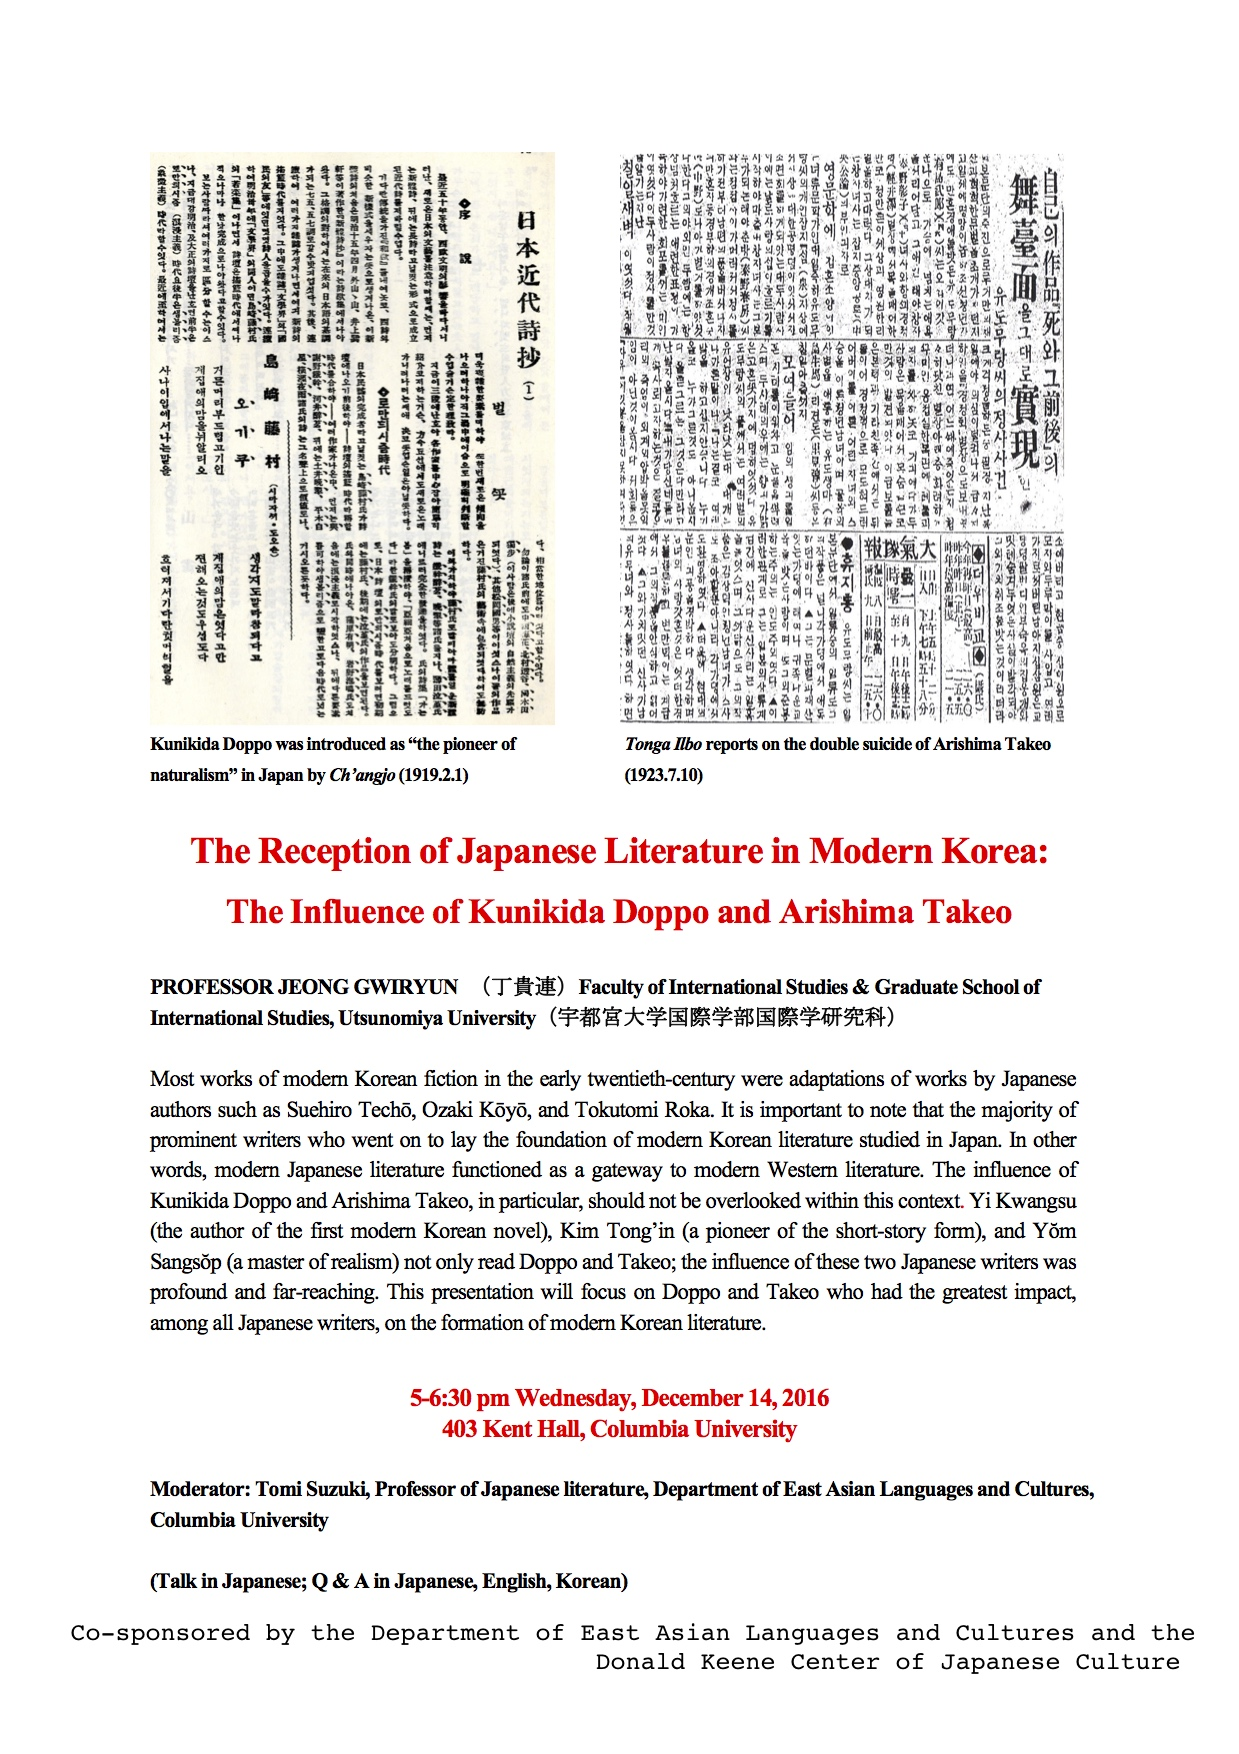 flyer-prof-jeong-talk-on-dec14